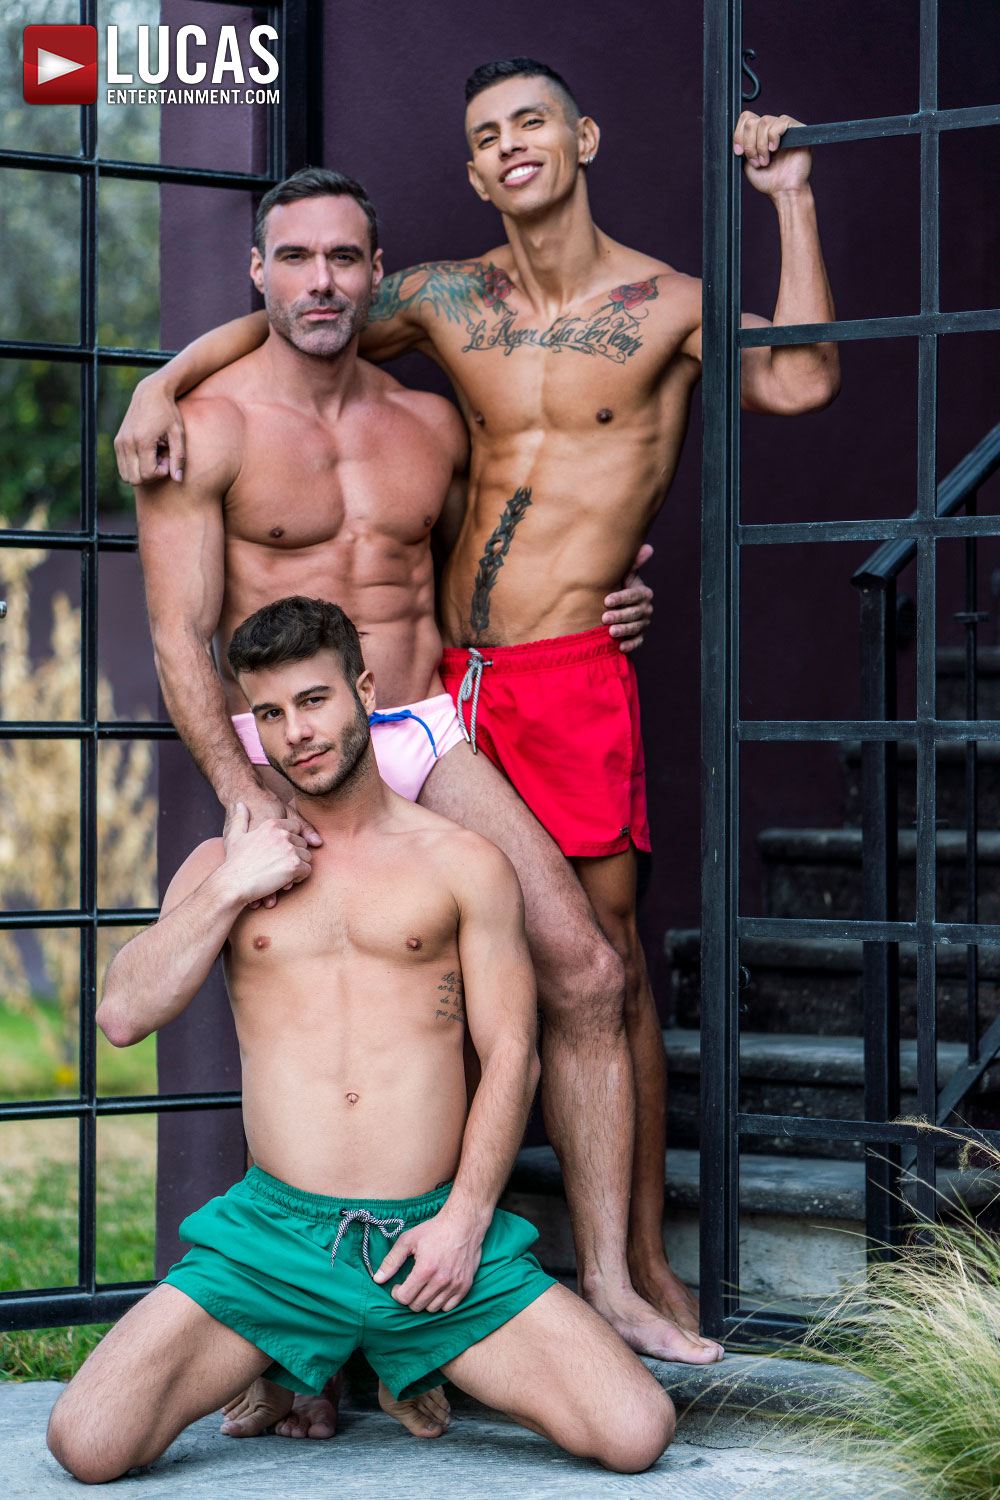 Allen King And Max Avila Share Manuel Skye's Uncut Cock - Gay Movies - Lucas Entertainment